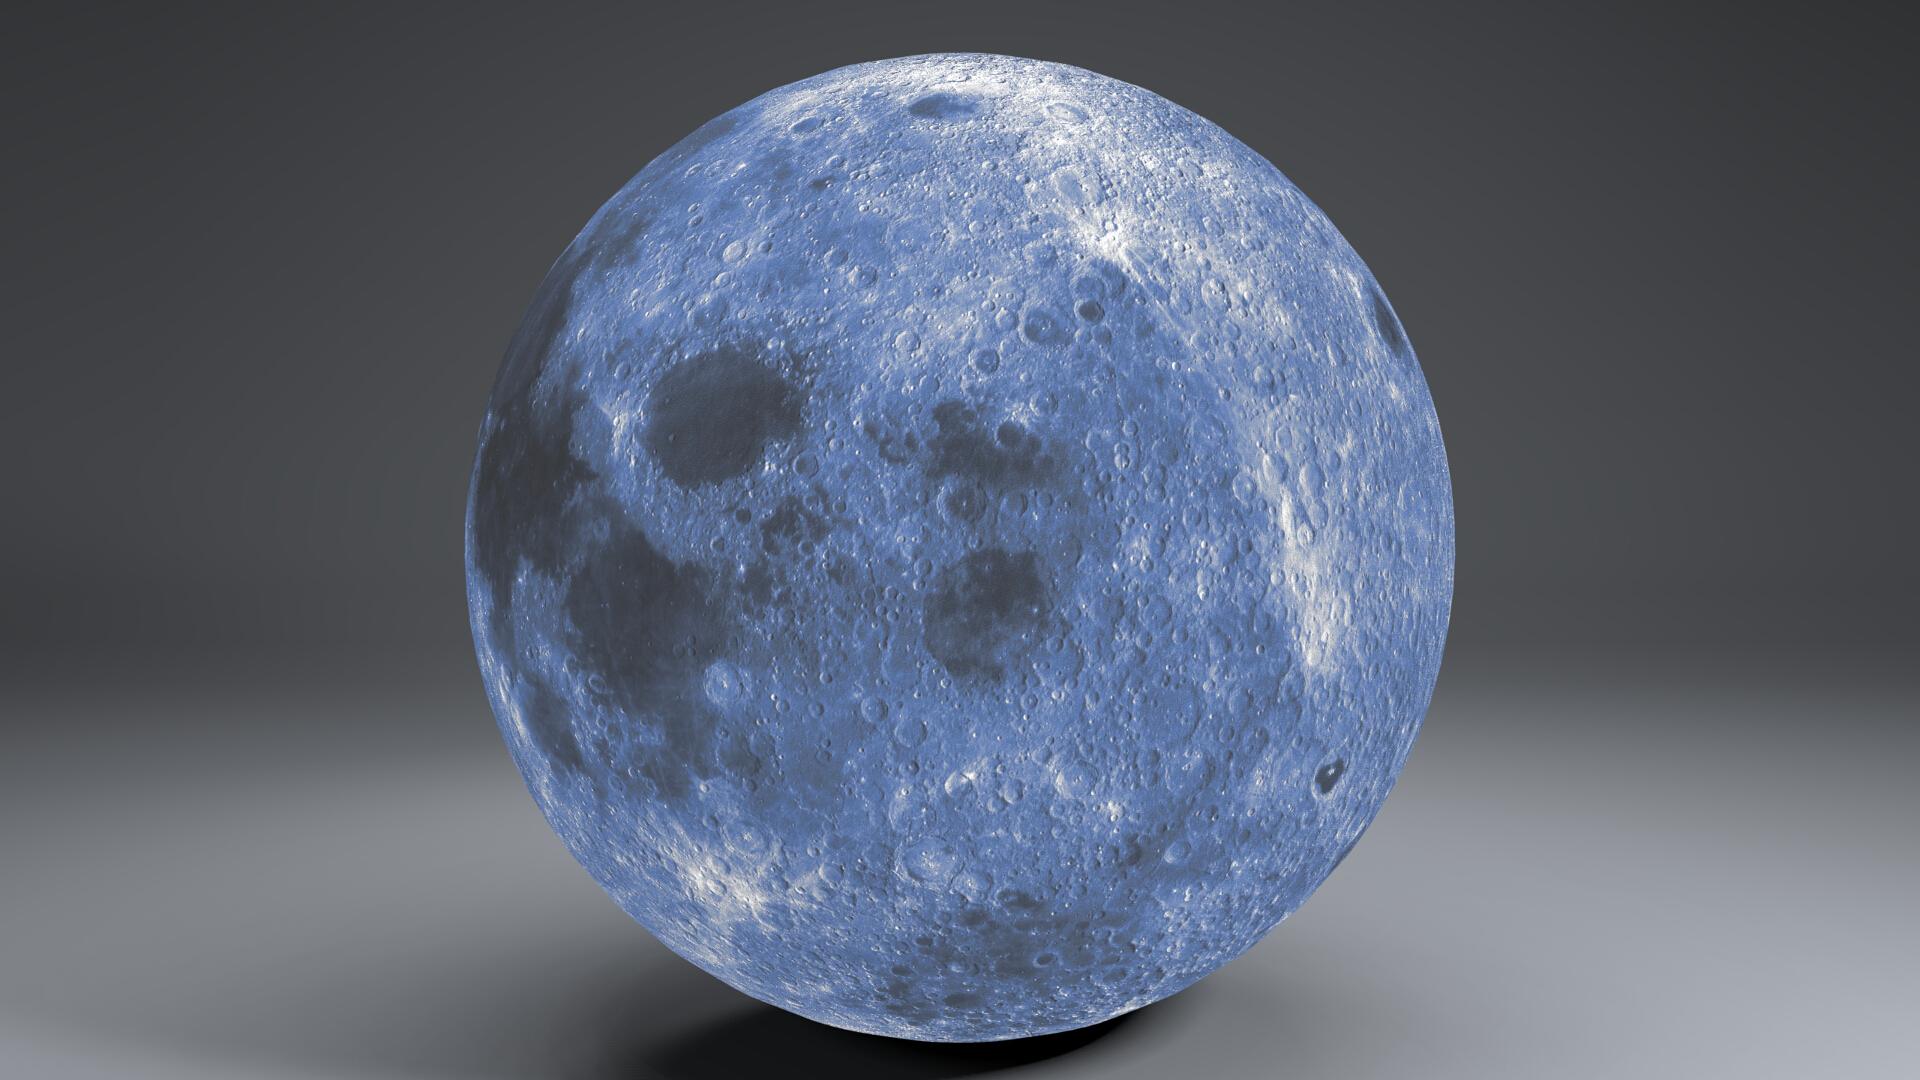 blue moonglobe 11k 3d model 3ds fbx blend dae obj 221889